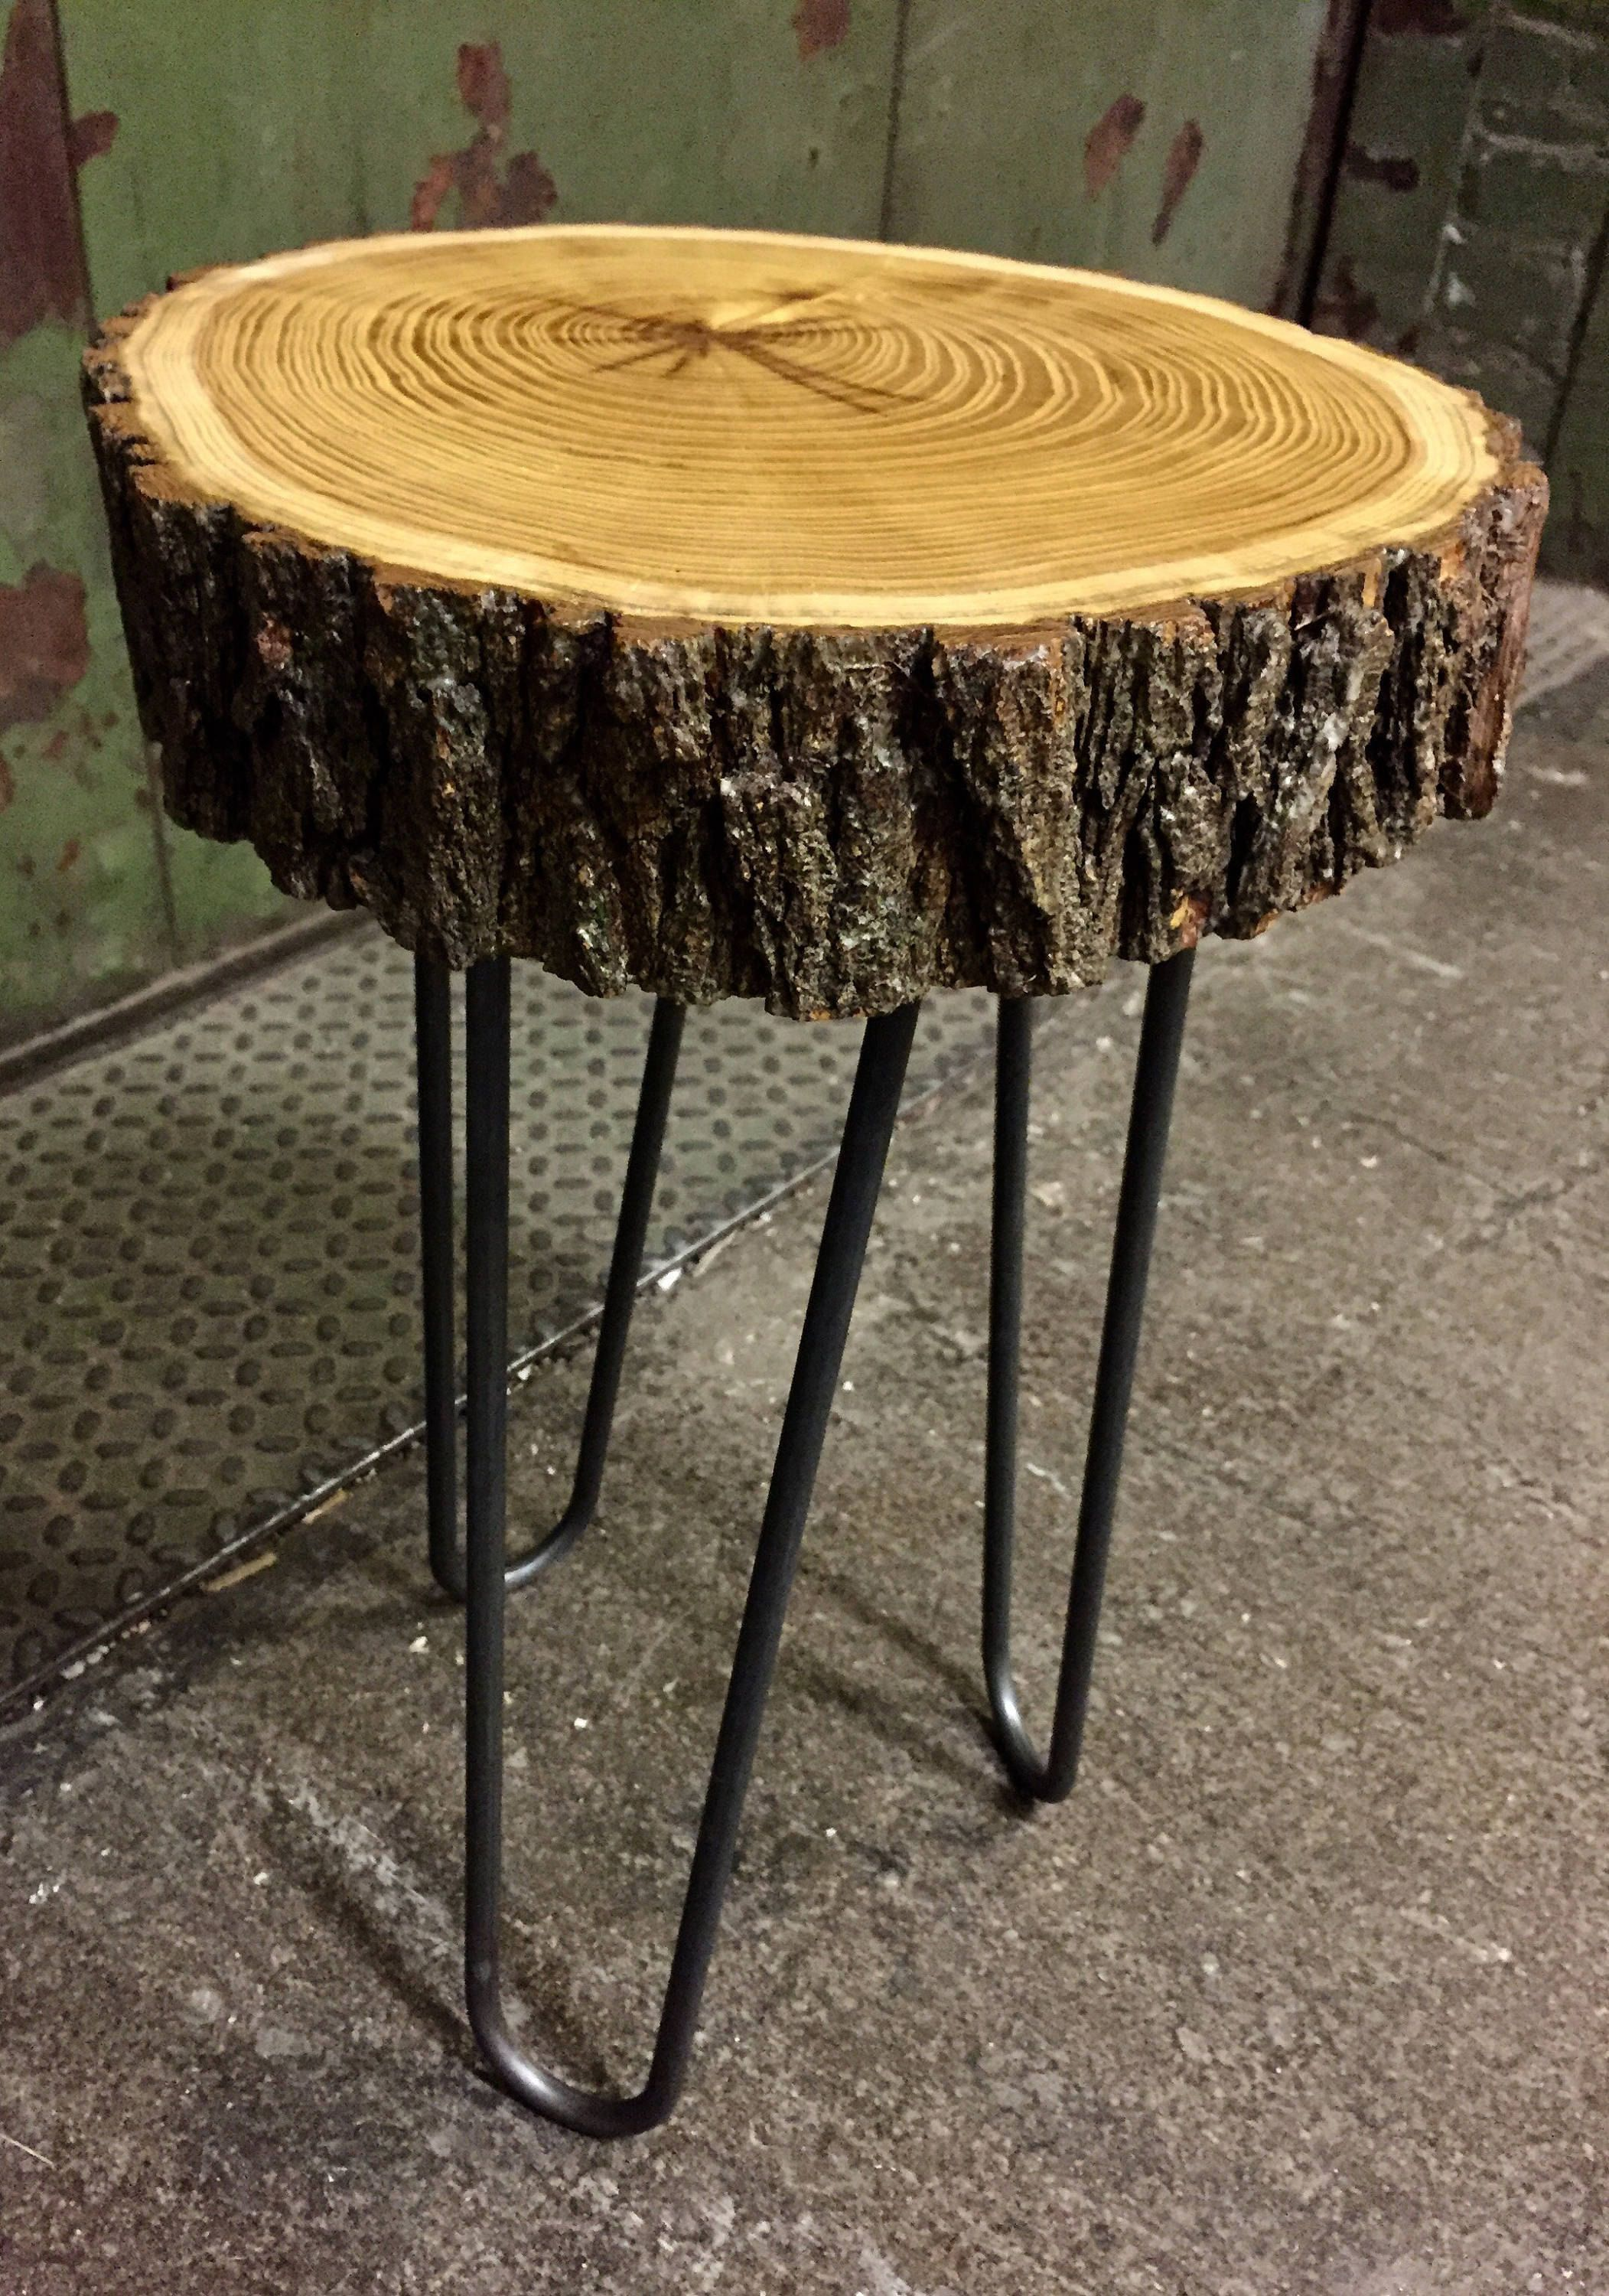 Live Edge Table Accent Table End Table Modern Rustic